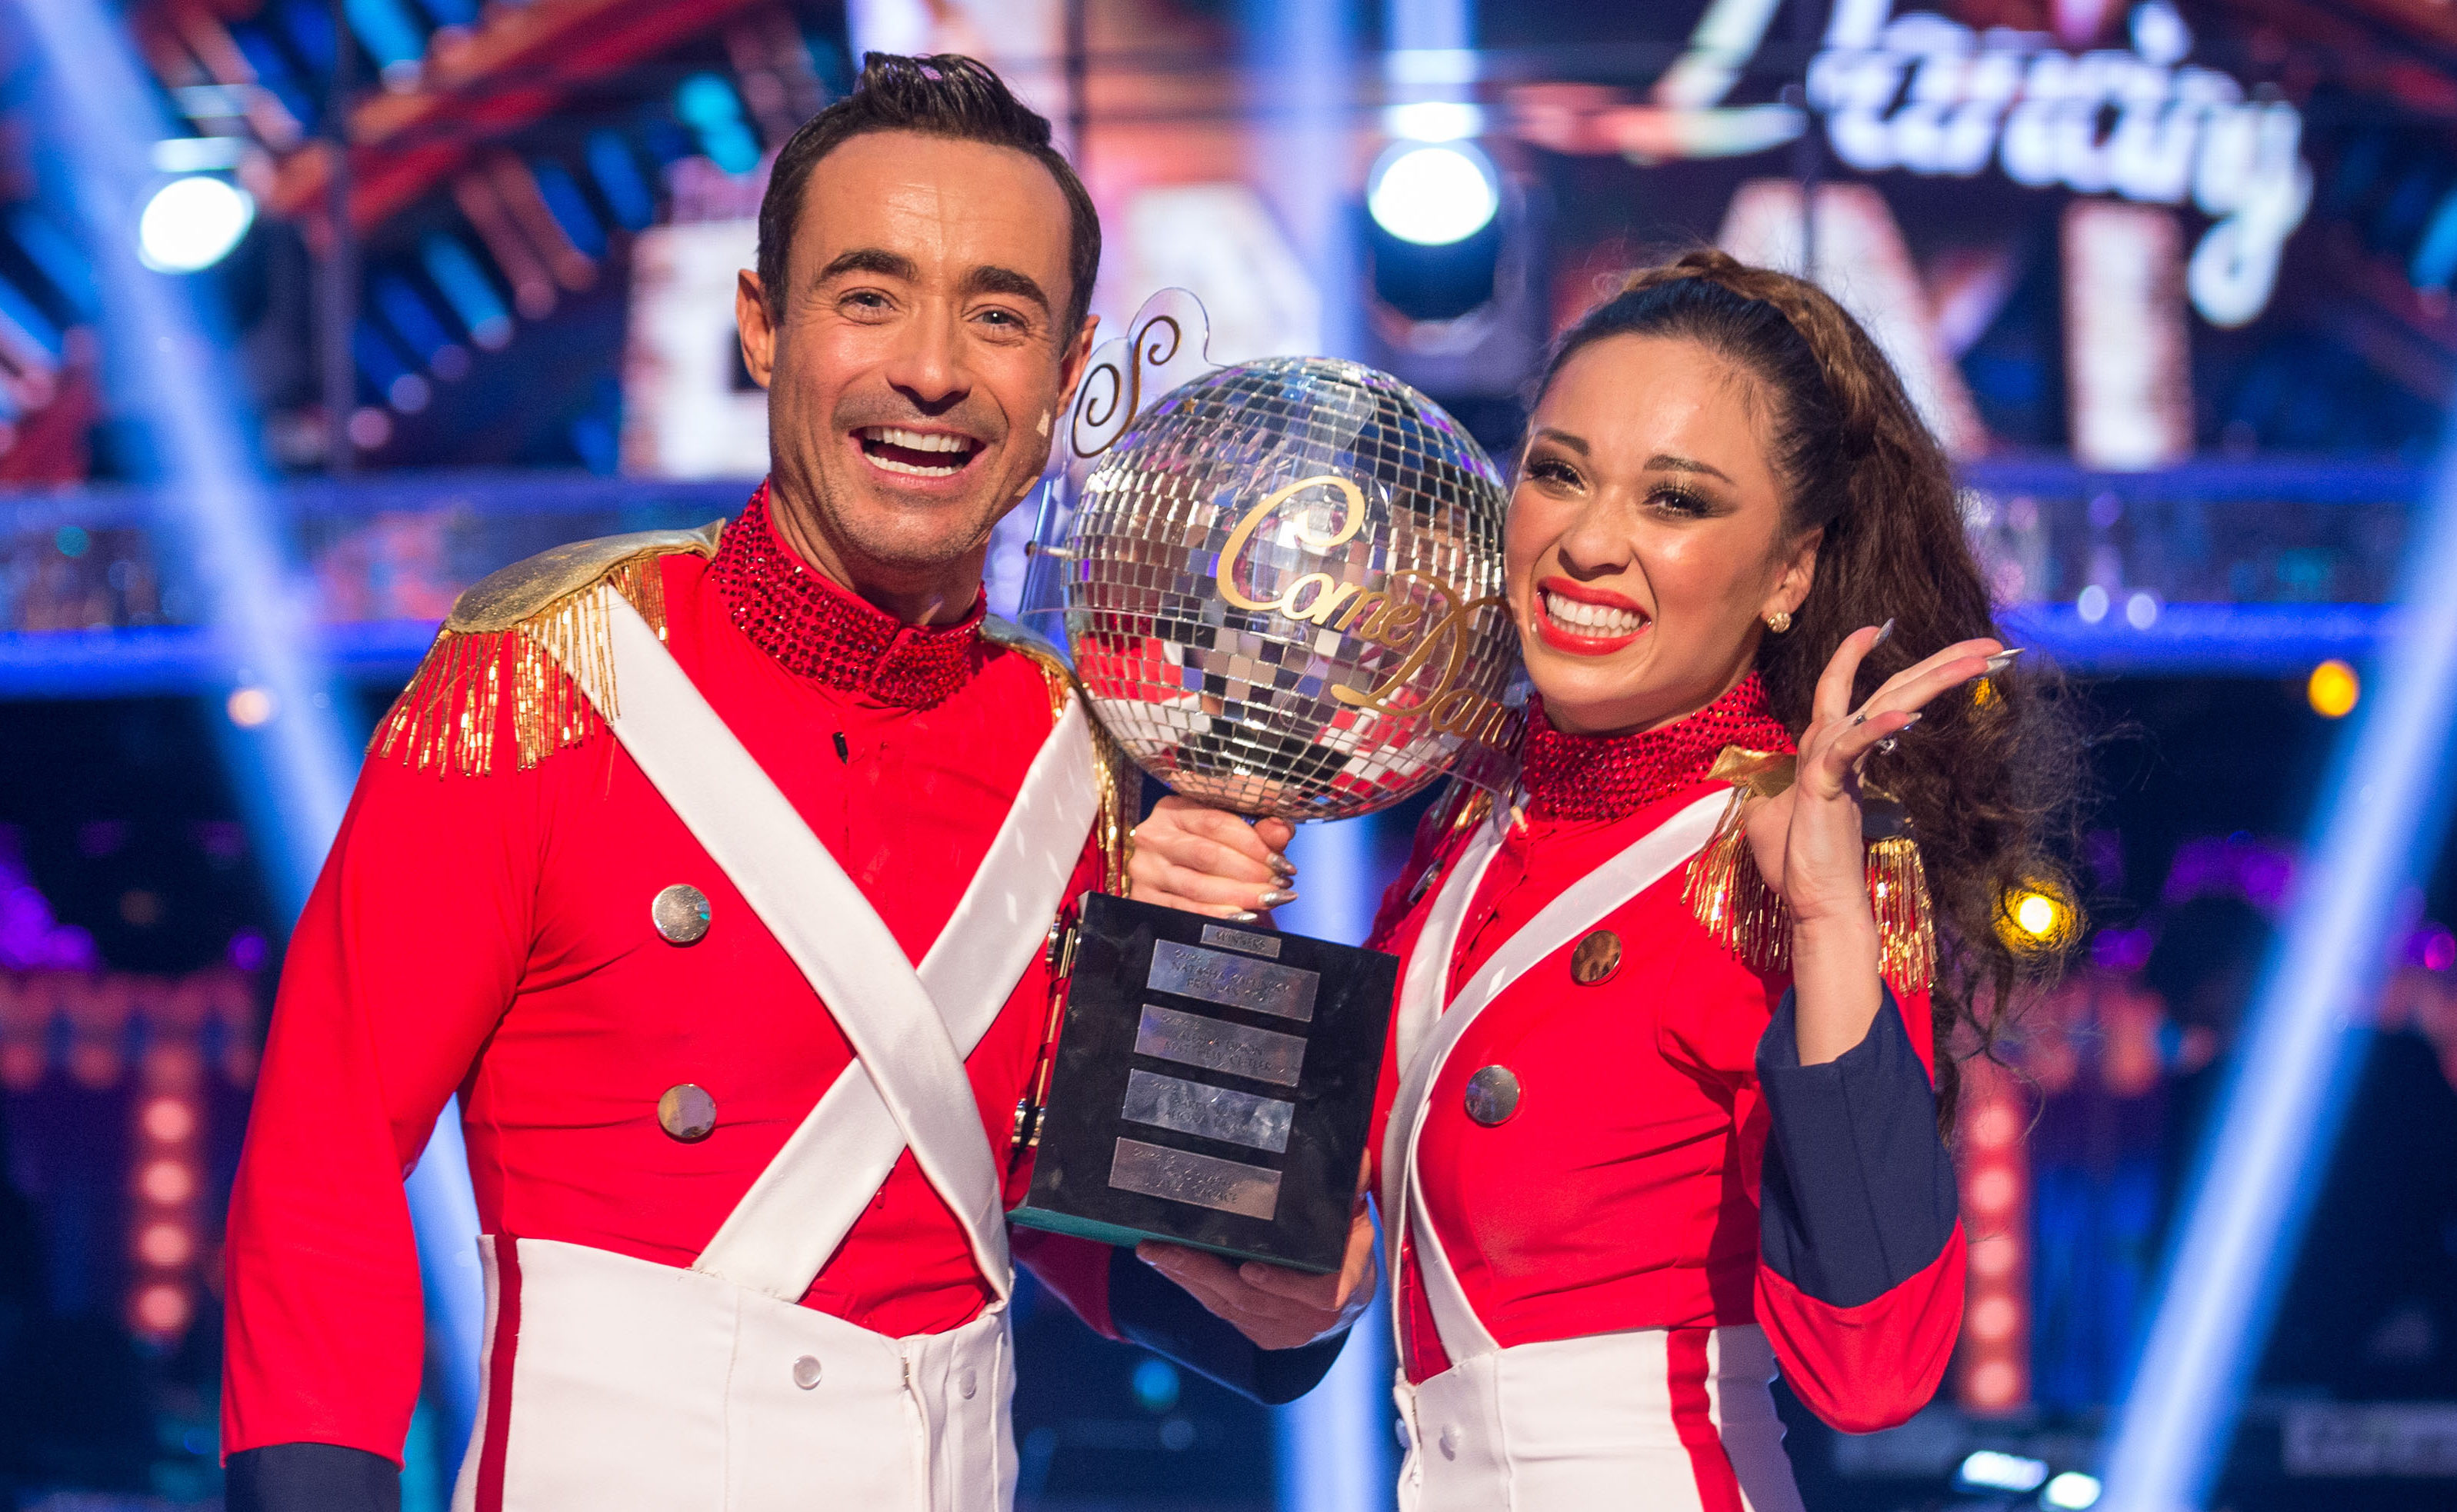 Katya Jones and Joe McFadden with the glitterball trophy (Guy Levy/BBC/PA Wire)